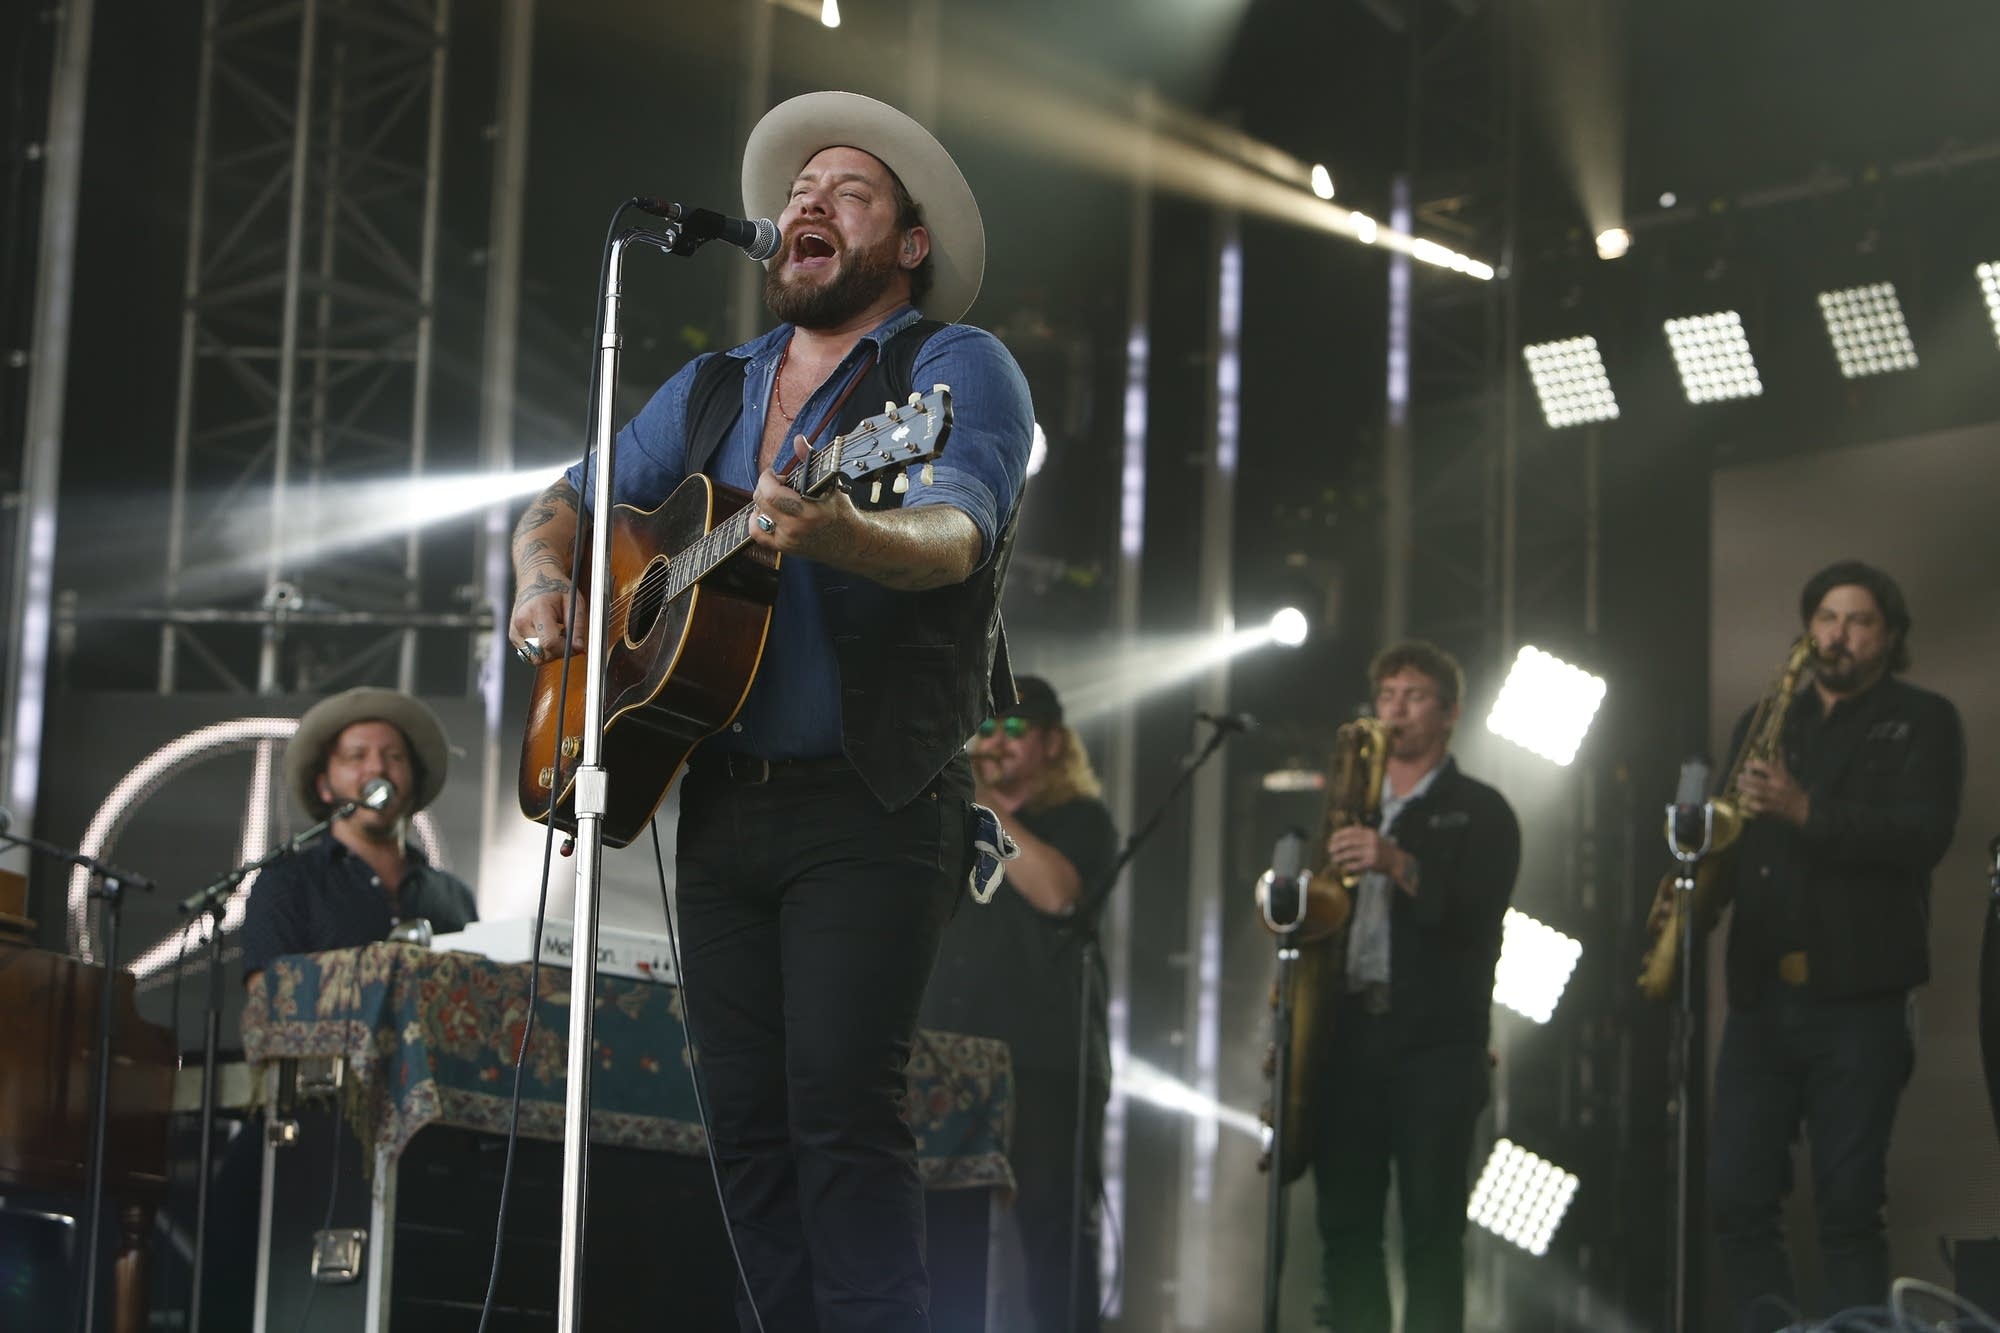 Nathaniel Rateliff and the Night Sweats on 'Jimmy Kimmel Live!'